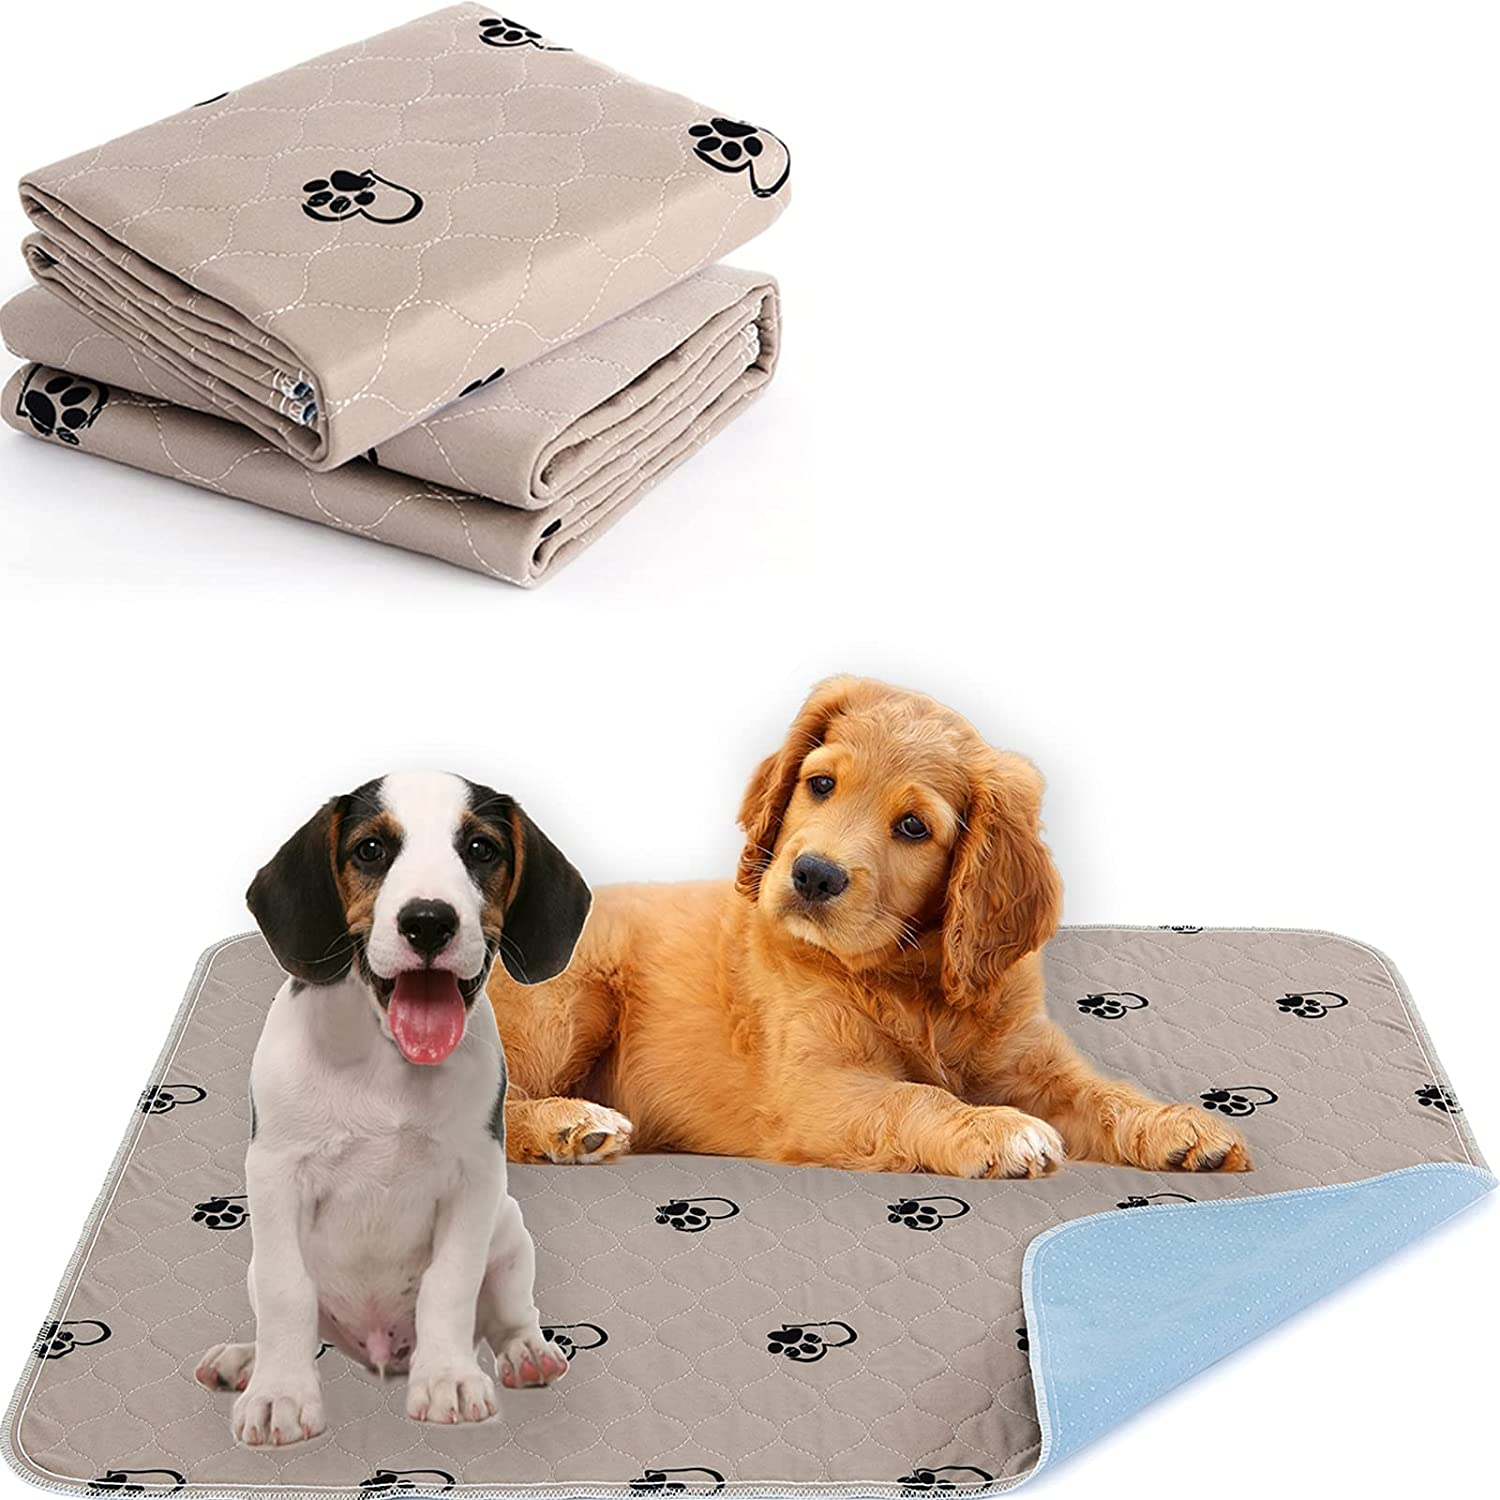 KAWALA Washable Pee Pads for Training Recommended Selling and selling Dogs Reusable Puppy Potty